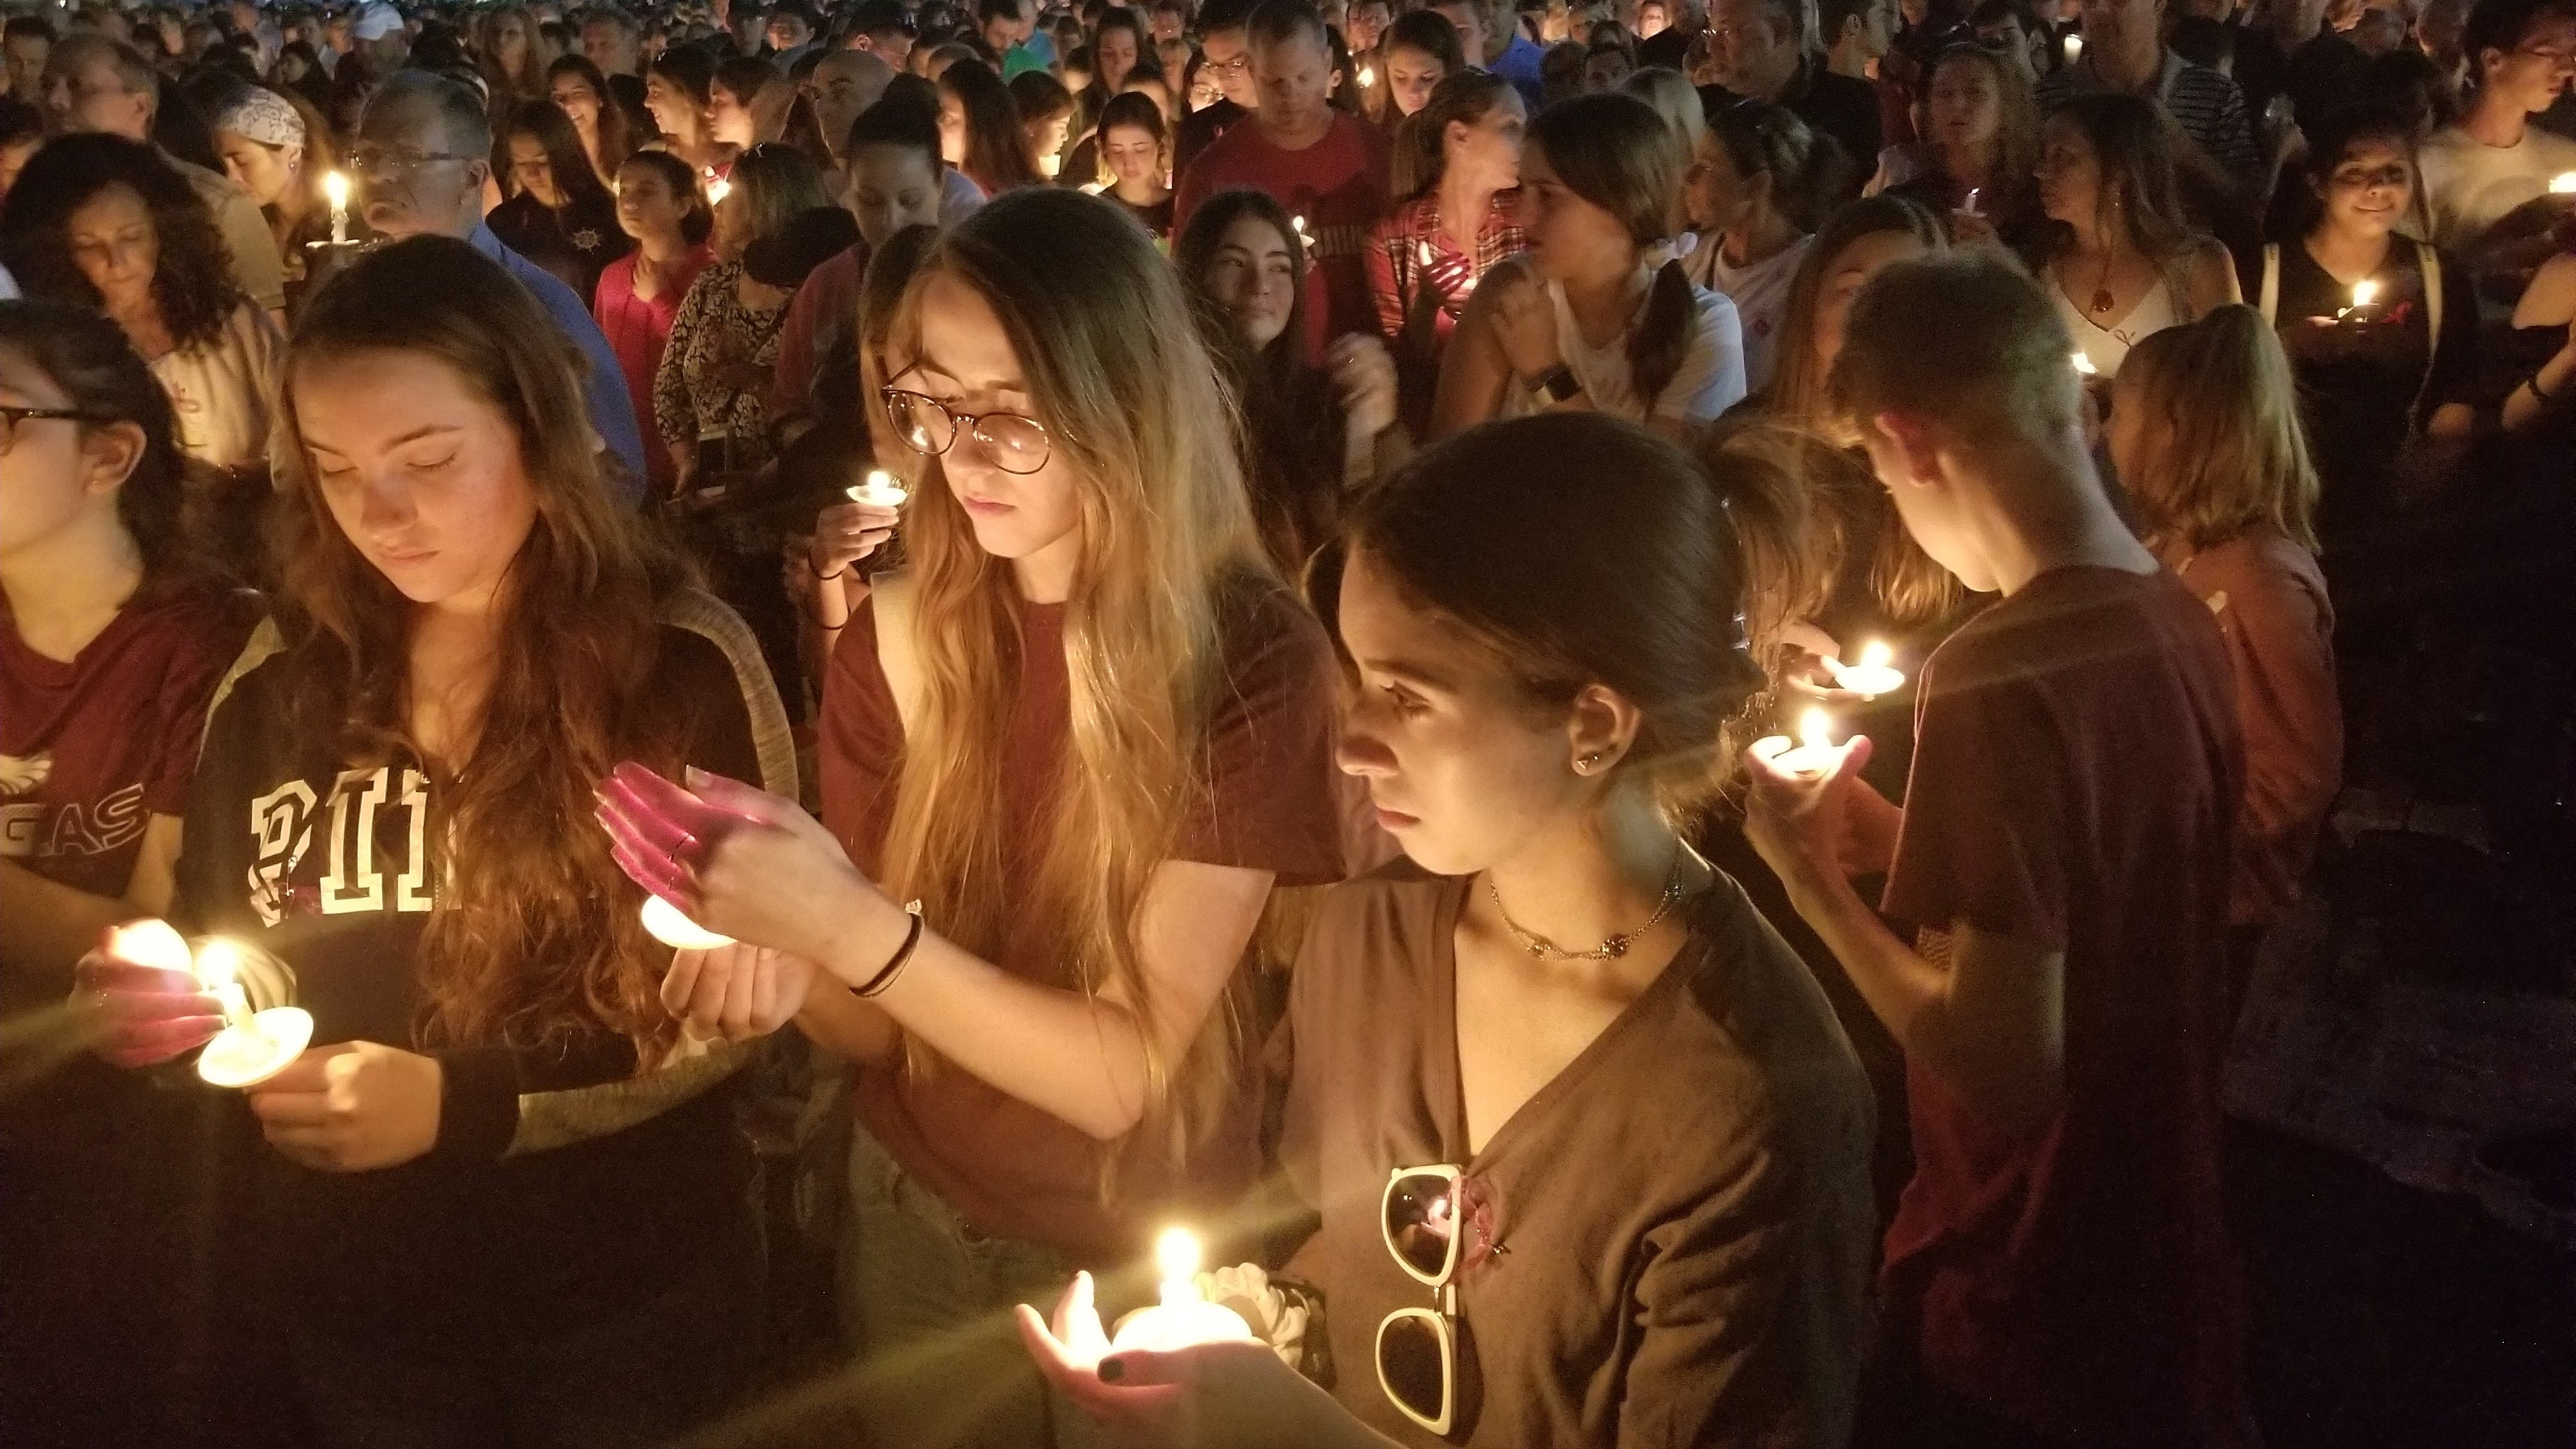 A week ago, kids in Parkland, Fla., were talking about prom and graduation. Now they're talking about funerals and gun control. Some students say the shooting that left 17 people dead will be a catalyst for different gun laws.